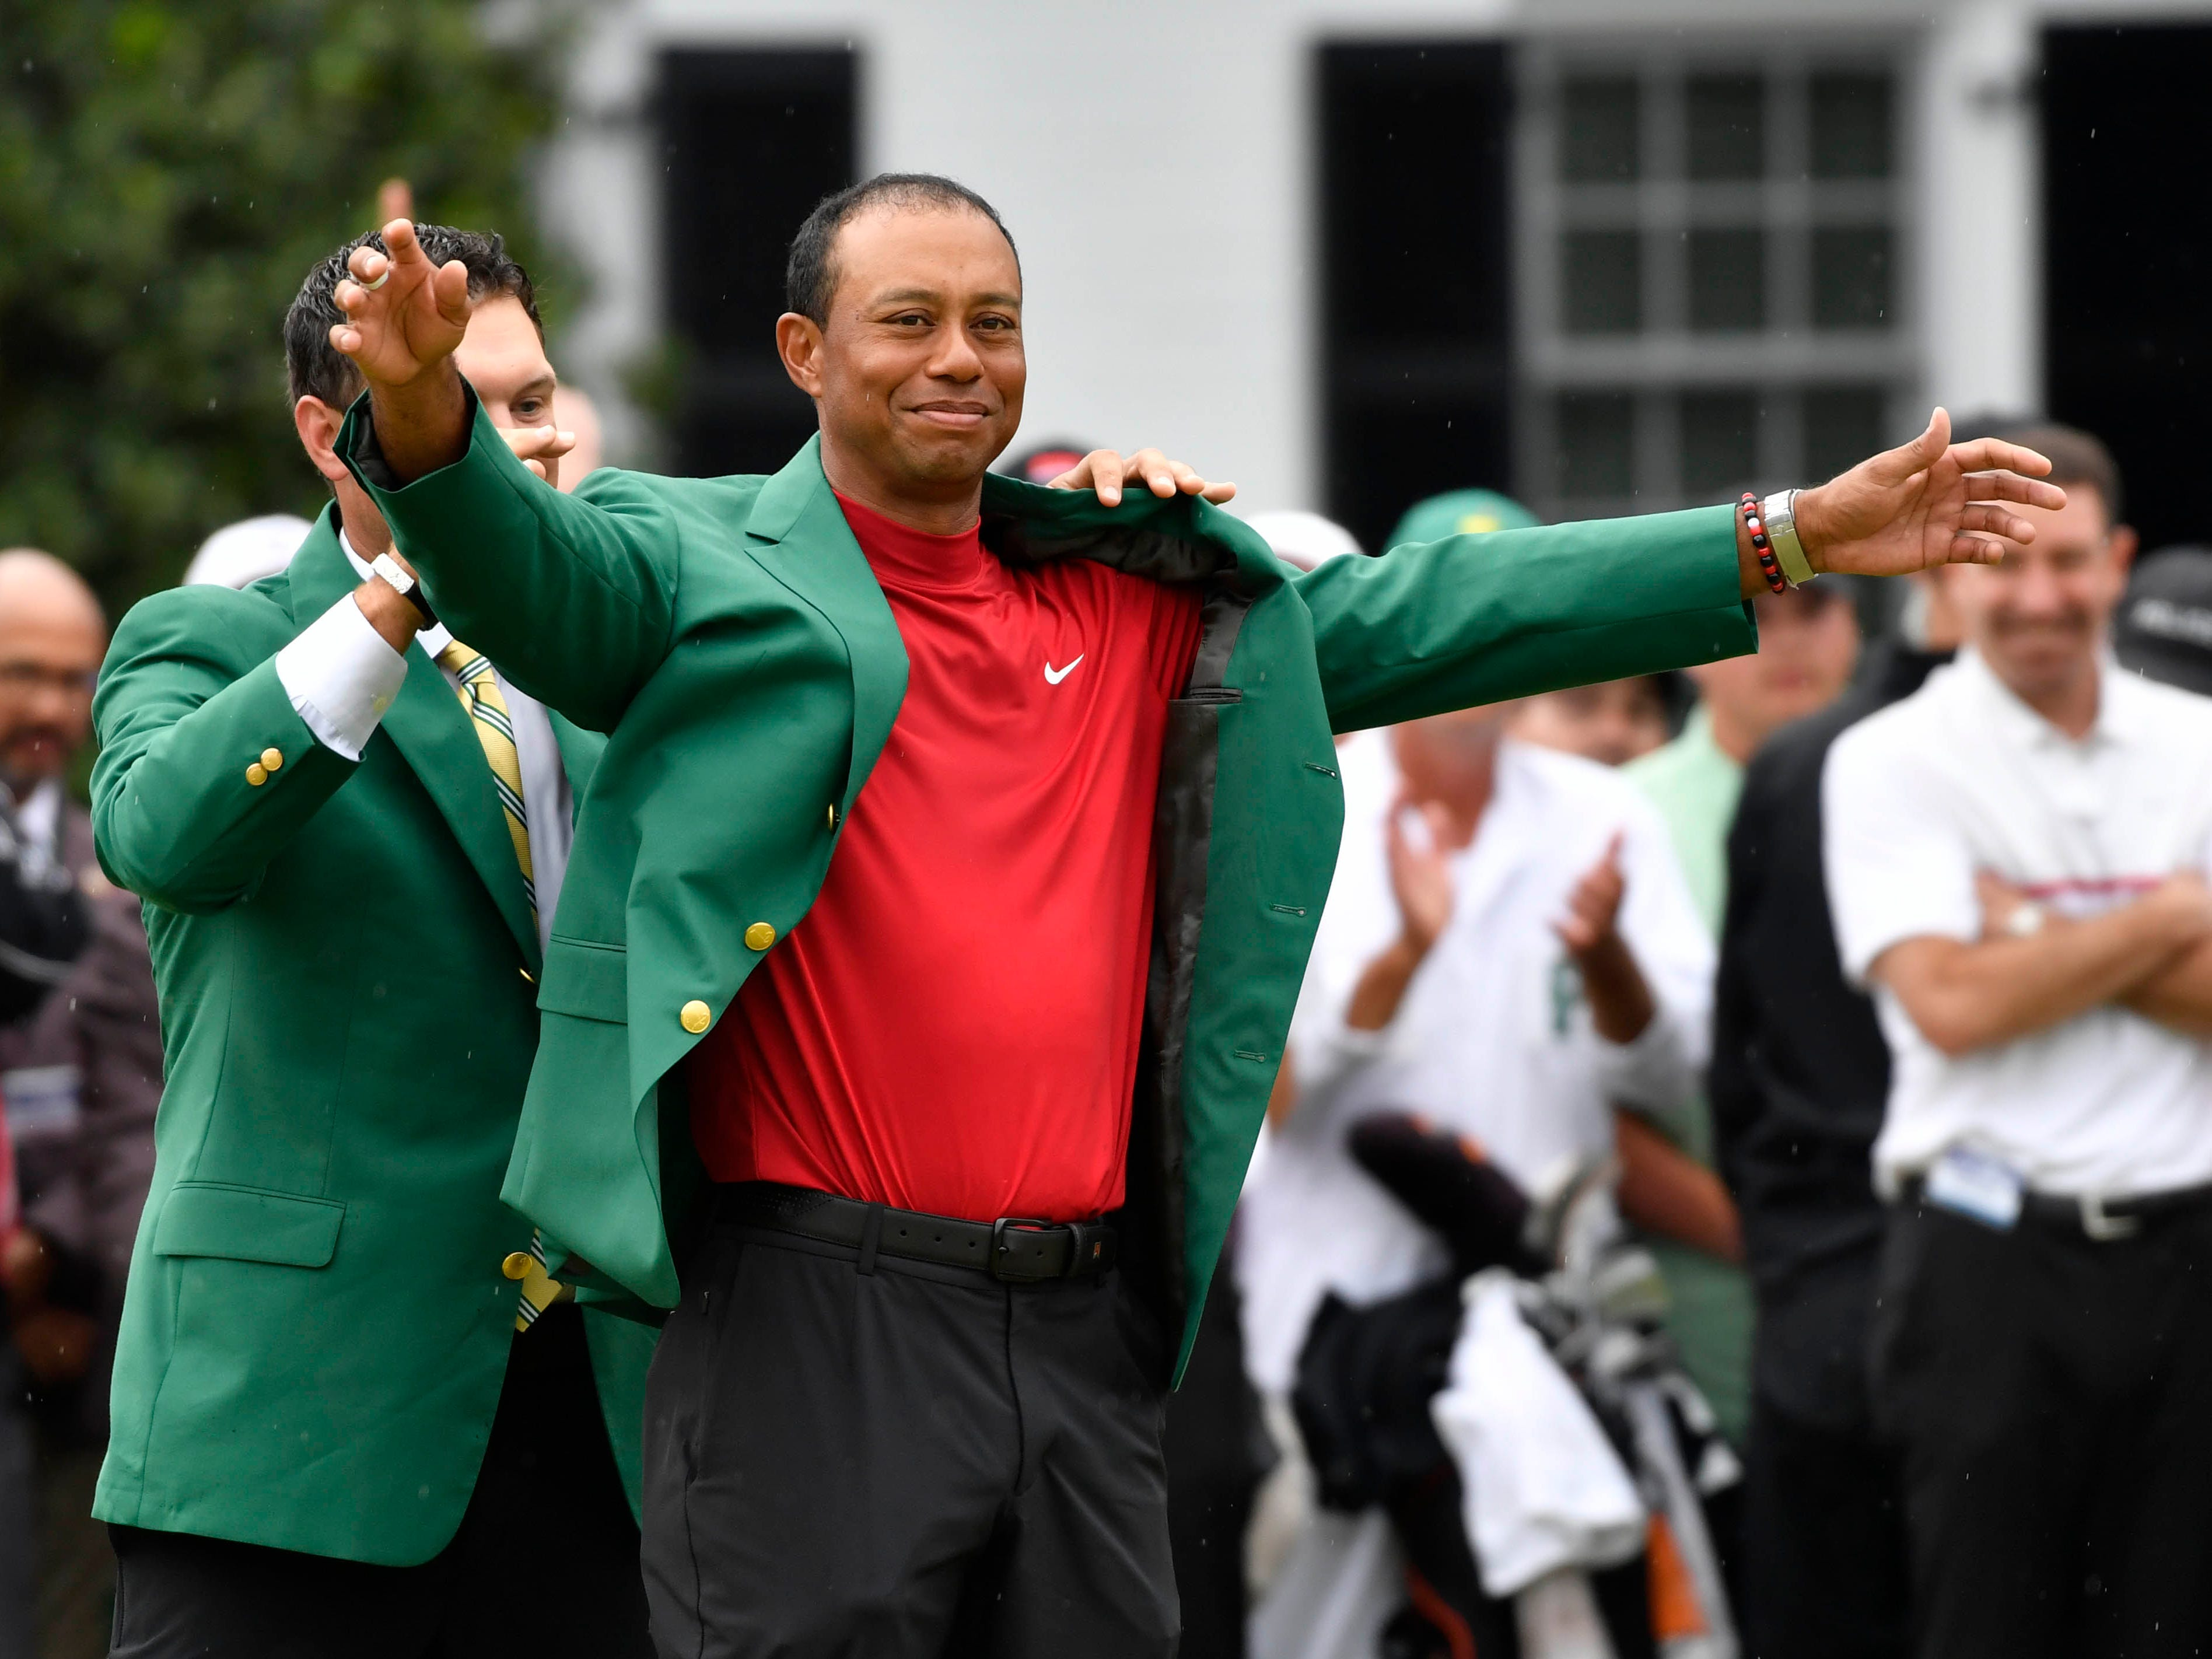 2018 winner Patrick Reed places the green jacket on 2019 winner Tiger Woods, the fifth win at Augusta National in Woods' career.